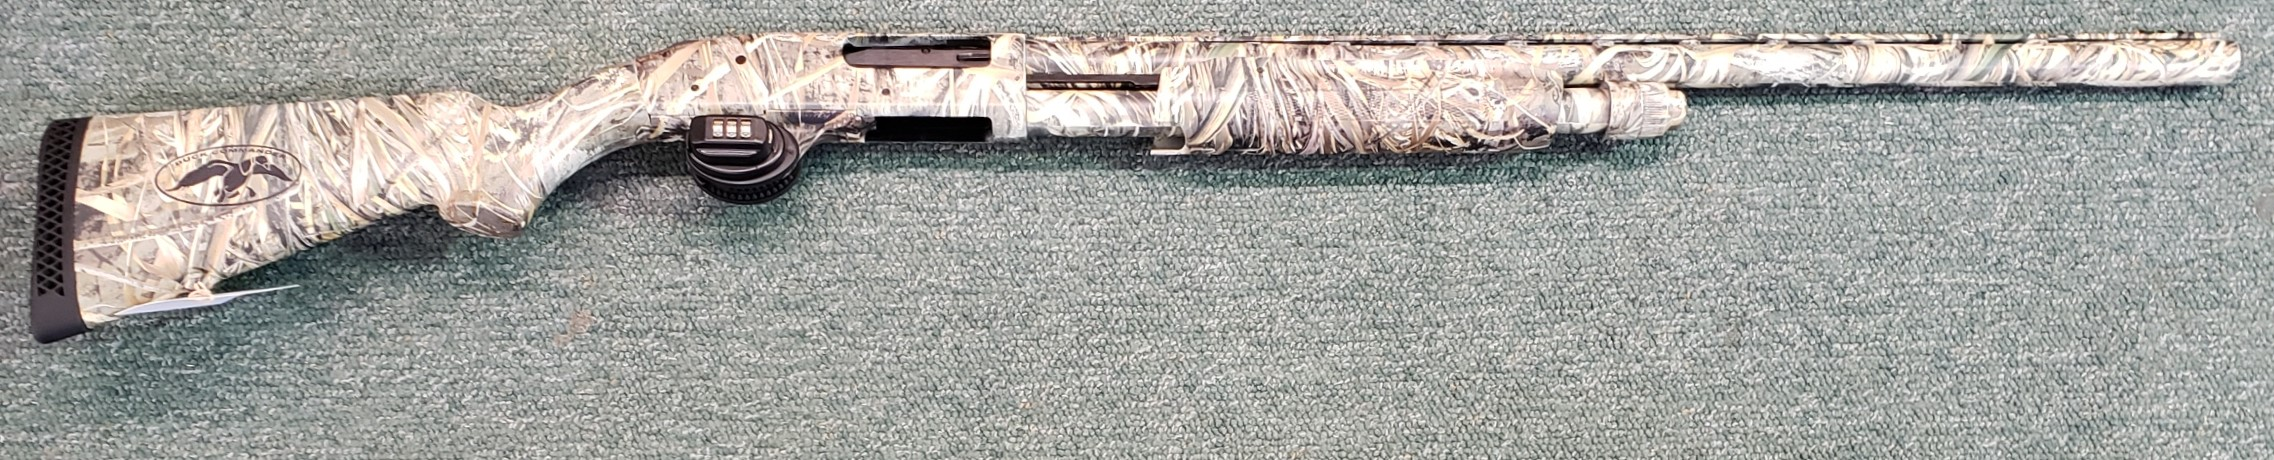 "Mossberg 835 12G 3"" Realtree DC"